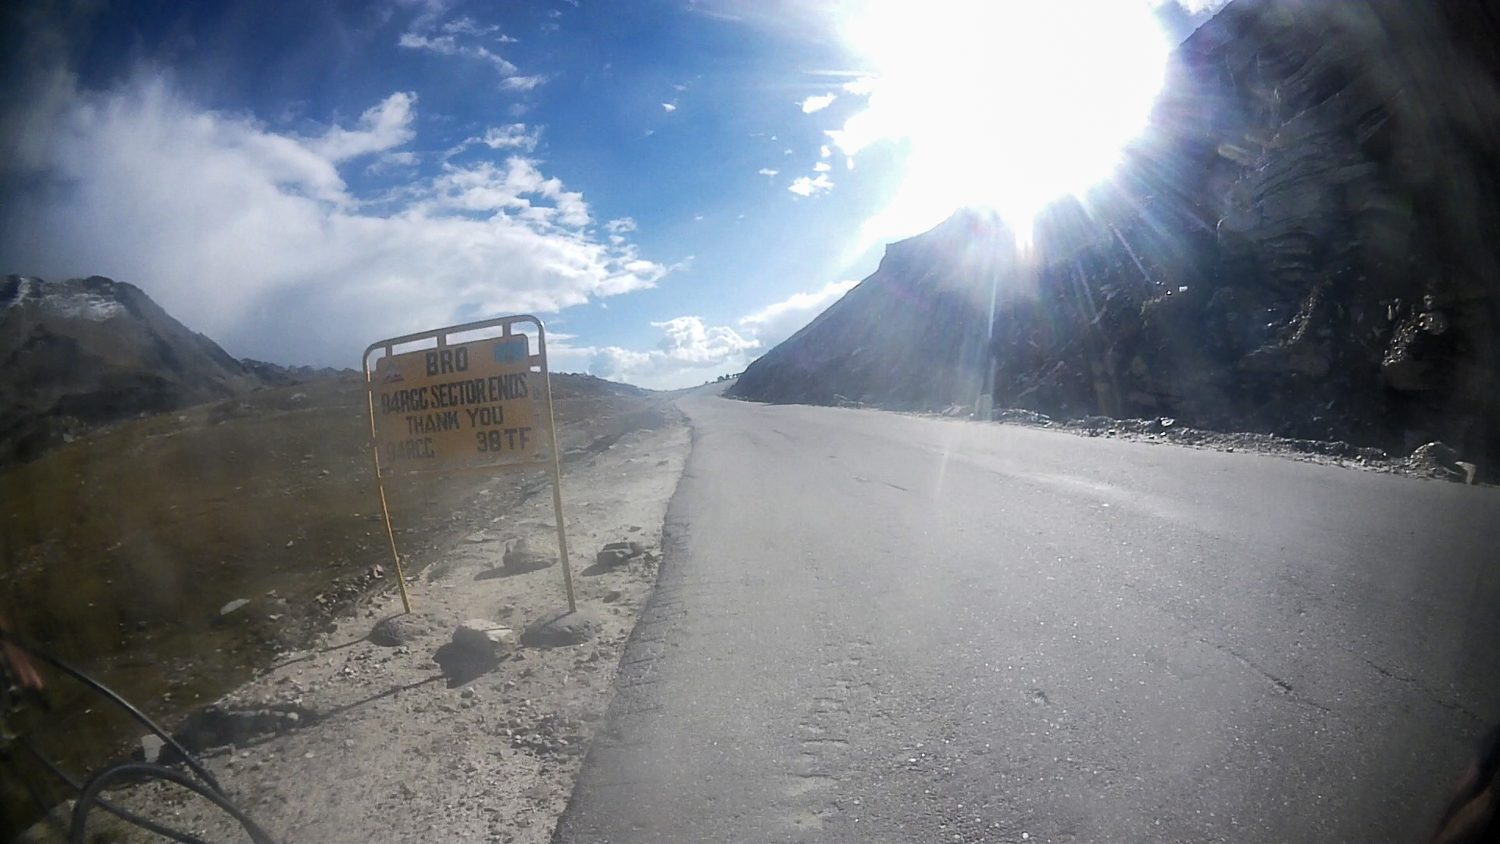 Cycling from Keylong to Manali